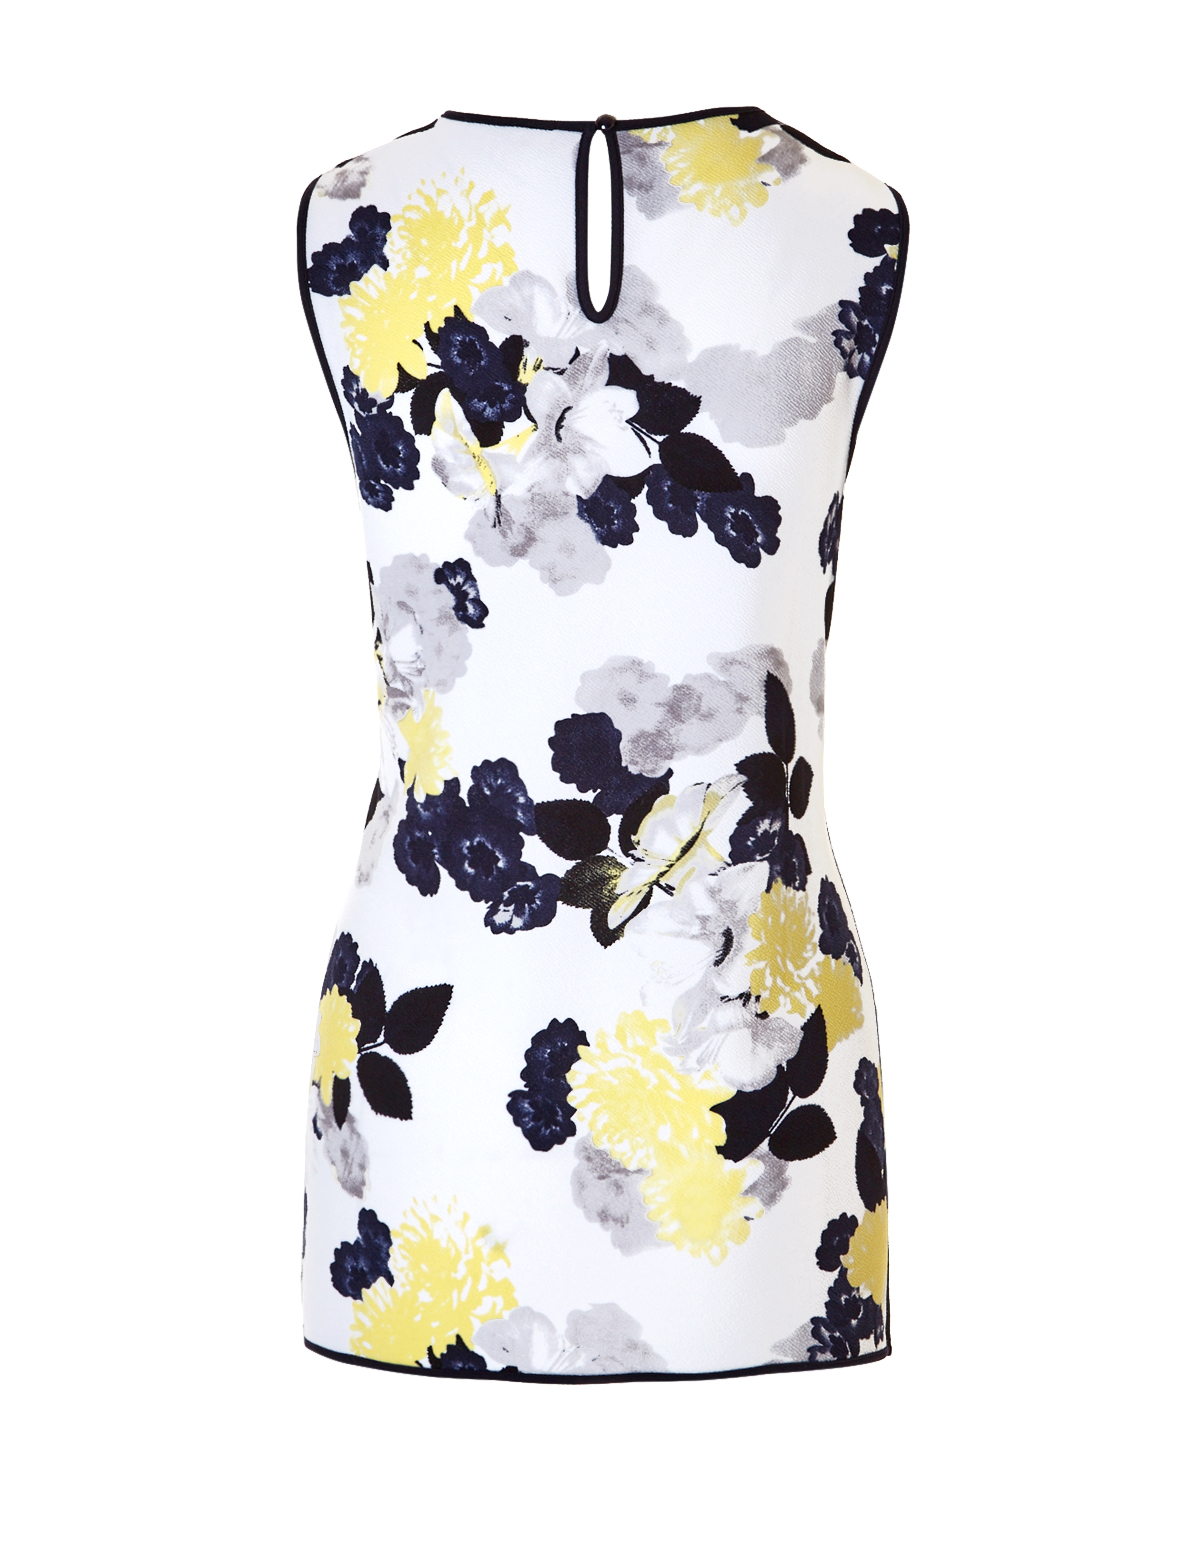 Floral print piped top cleo floral print piped top whiteyellowblackgrey hi res mightylinksfo